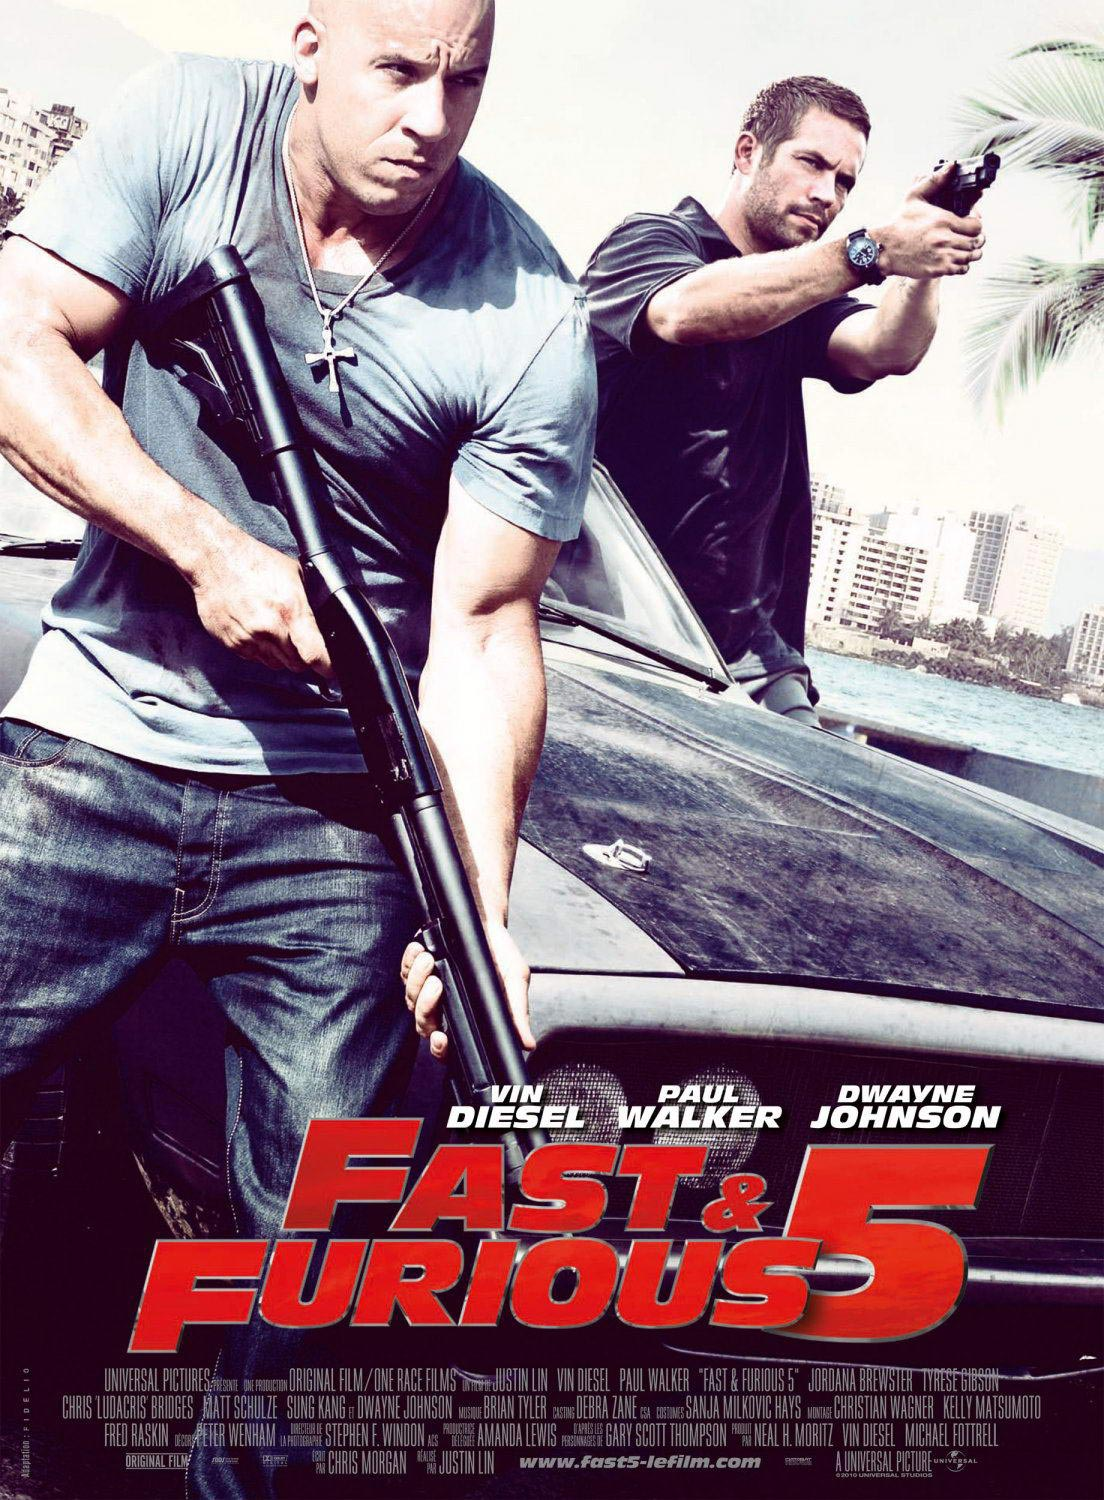 fast five poster 04 Happy 4/20 2020: The Best Movies for the Best Strains of Weed